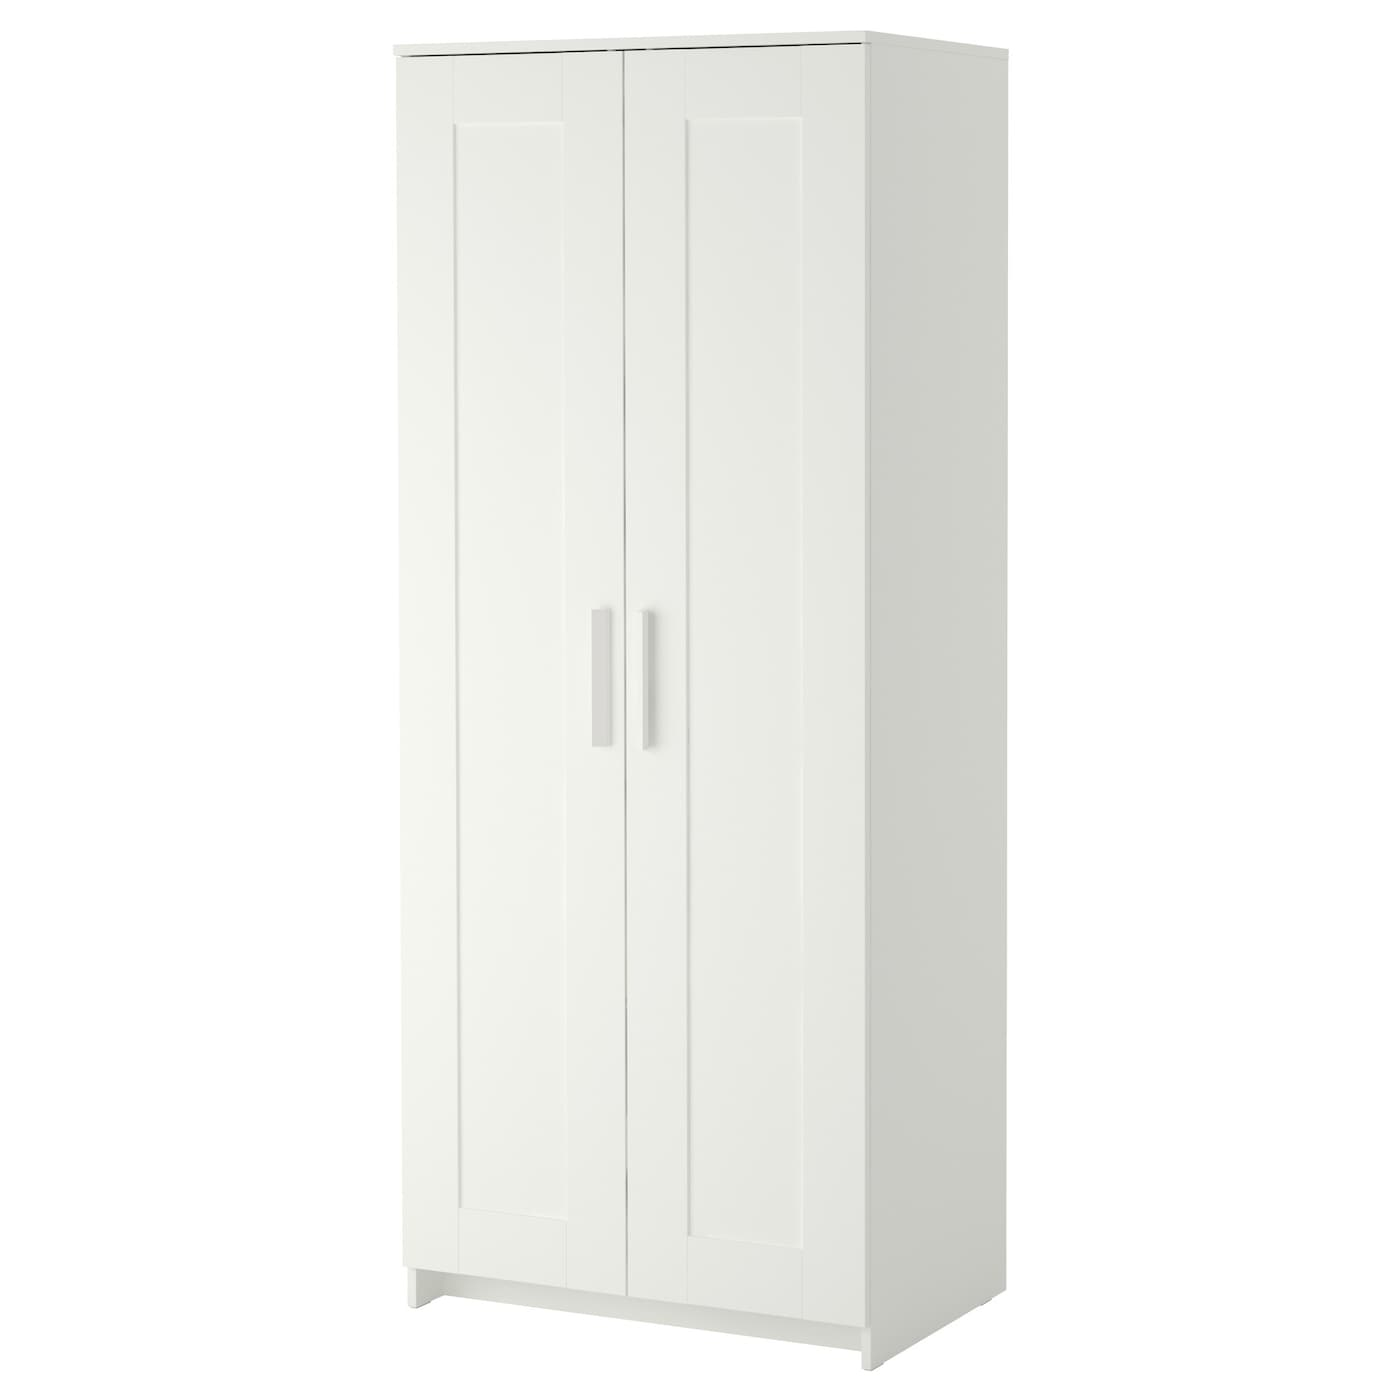 ikea brimnes wardrobe with doors perfect for folded as well as long and short hanging